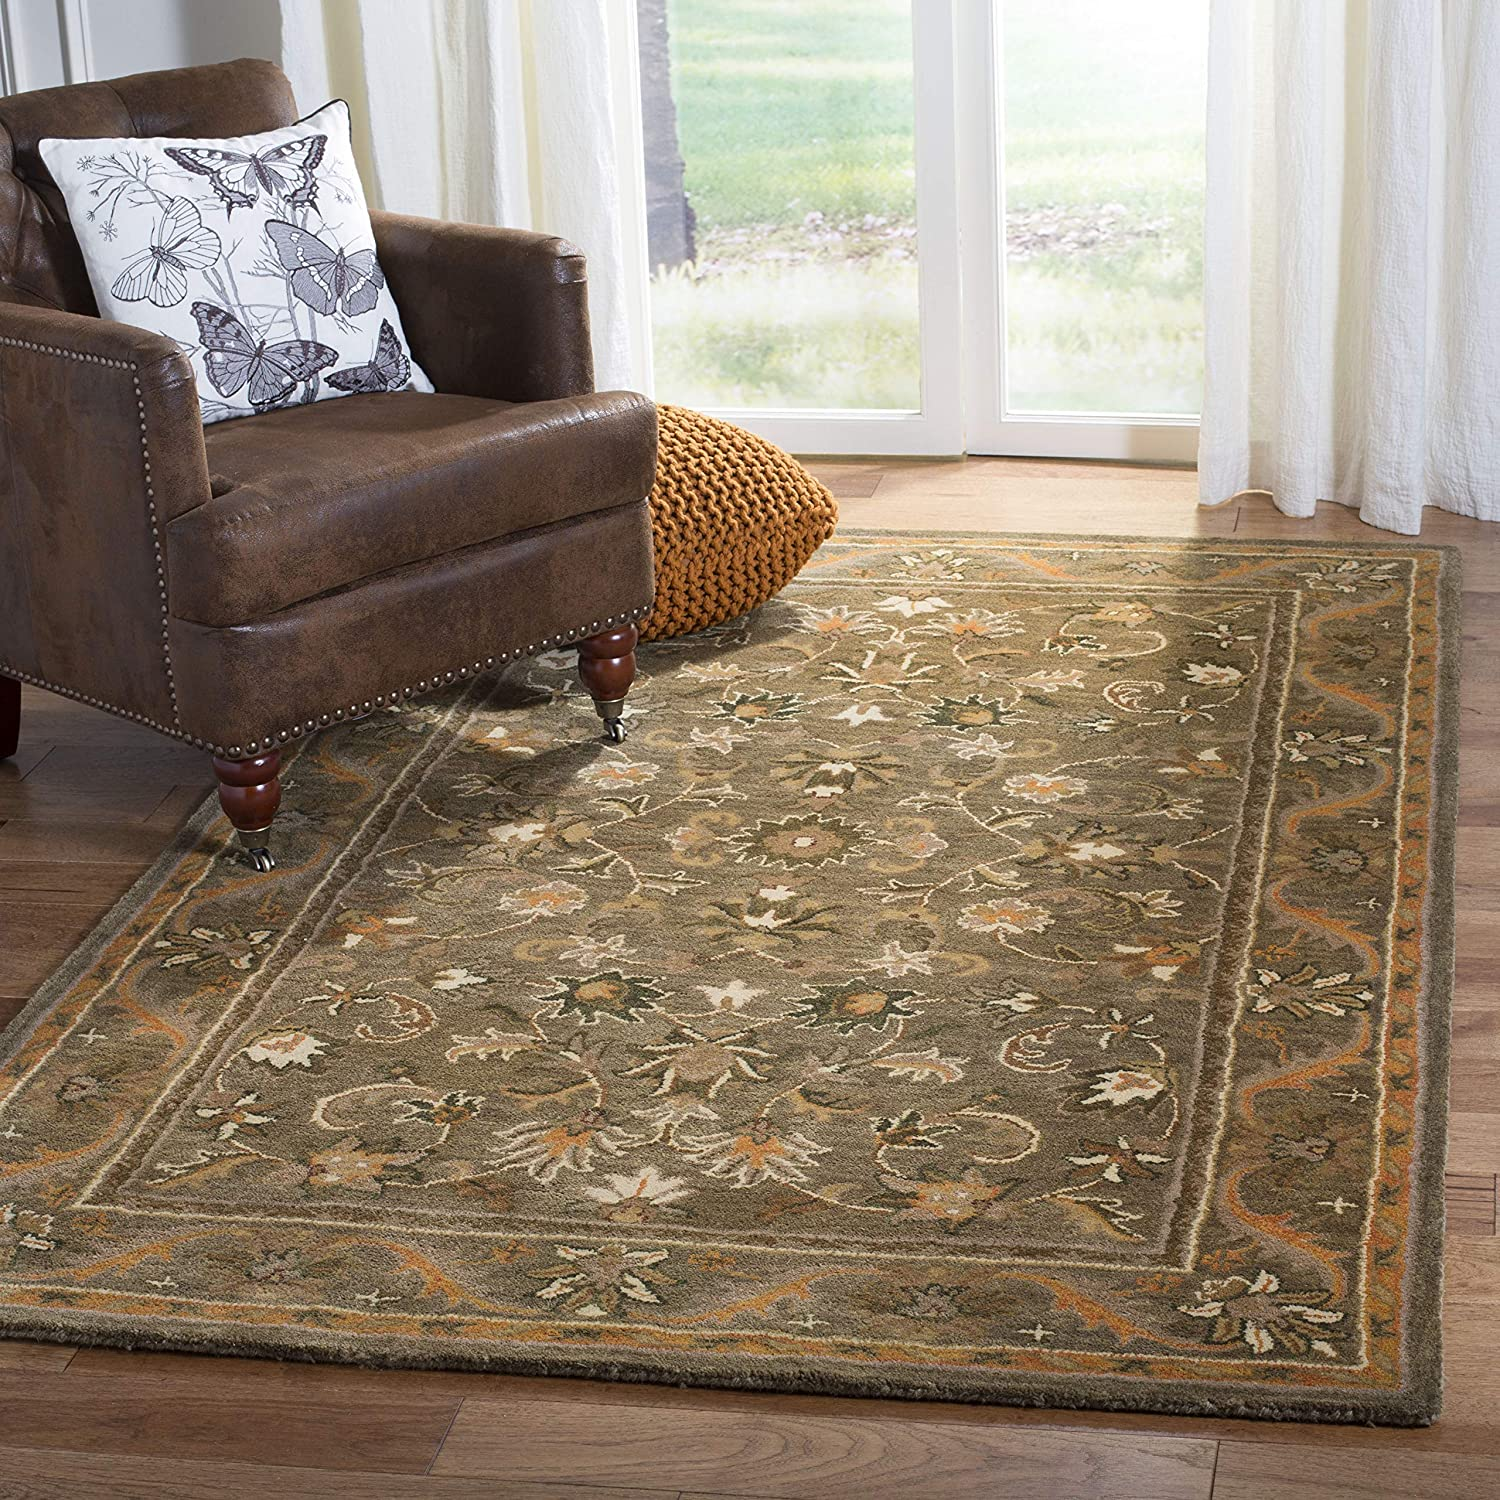 Safavieh Antiquity Collection AT52A Traditional Limited time for free shipping Orienta Max 54% OFF Handmade